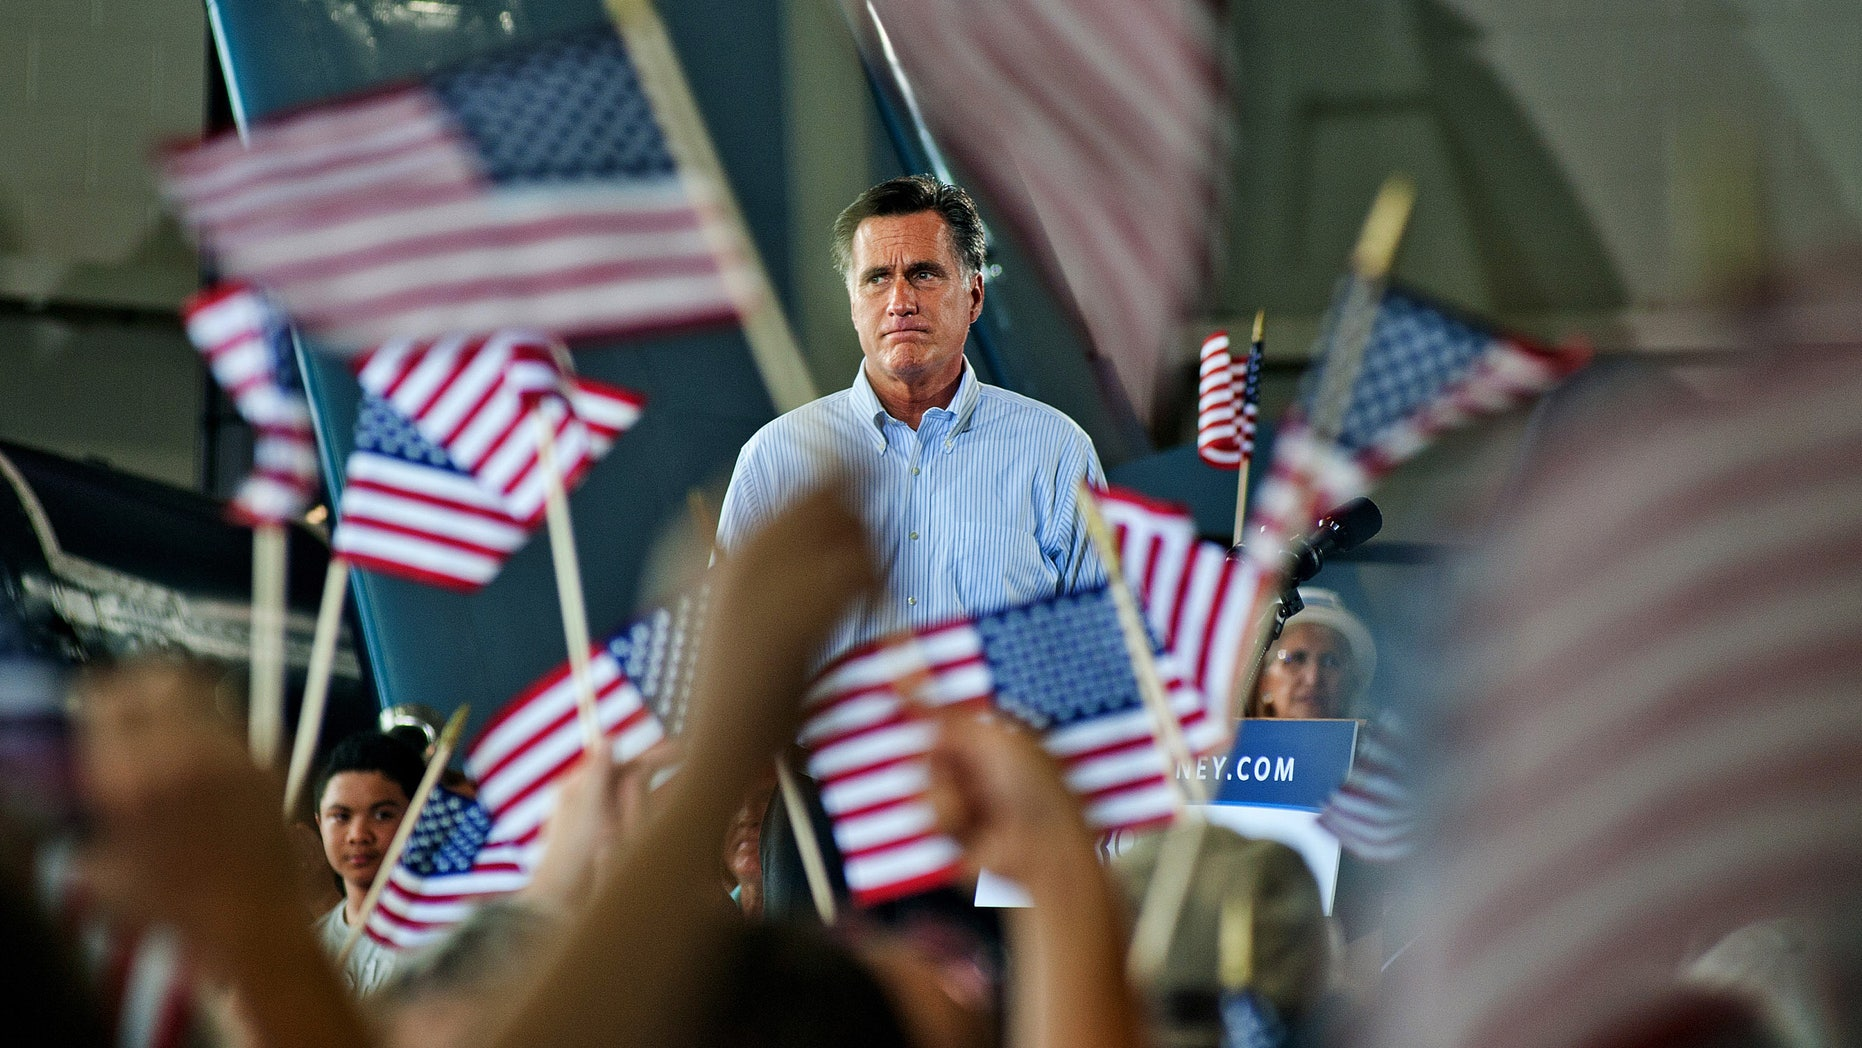 Saturday, Sept. 8, 2012: Mitt Romney addresses the audience at a rally with the GOP team at the Military Aviation Museum in Virginia Beach, Va.